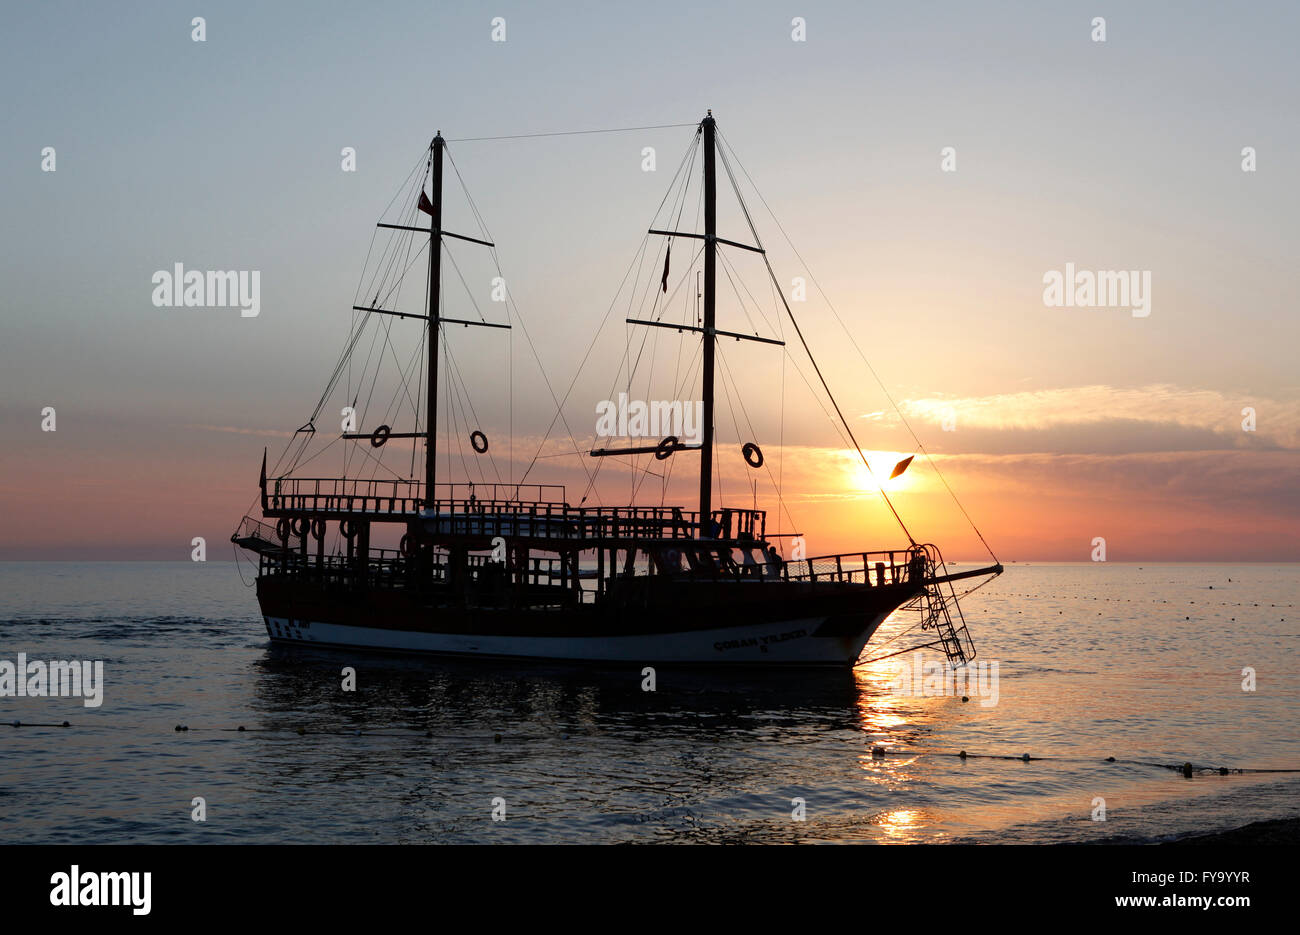 Excursion boat, sailing boat anchored on the beach at sunset, Manavgat, Antalya, Turkey - Stock Image